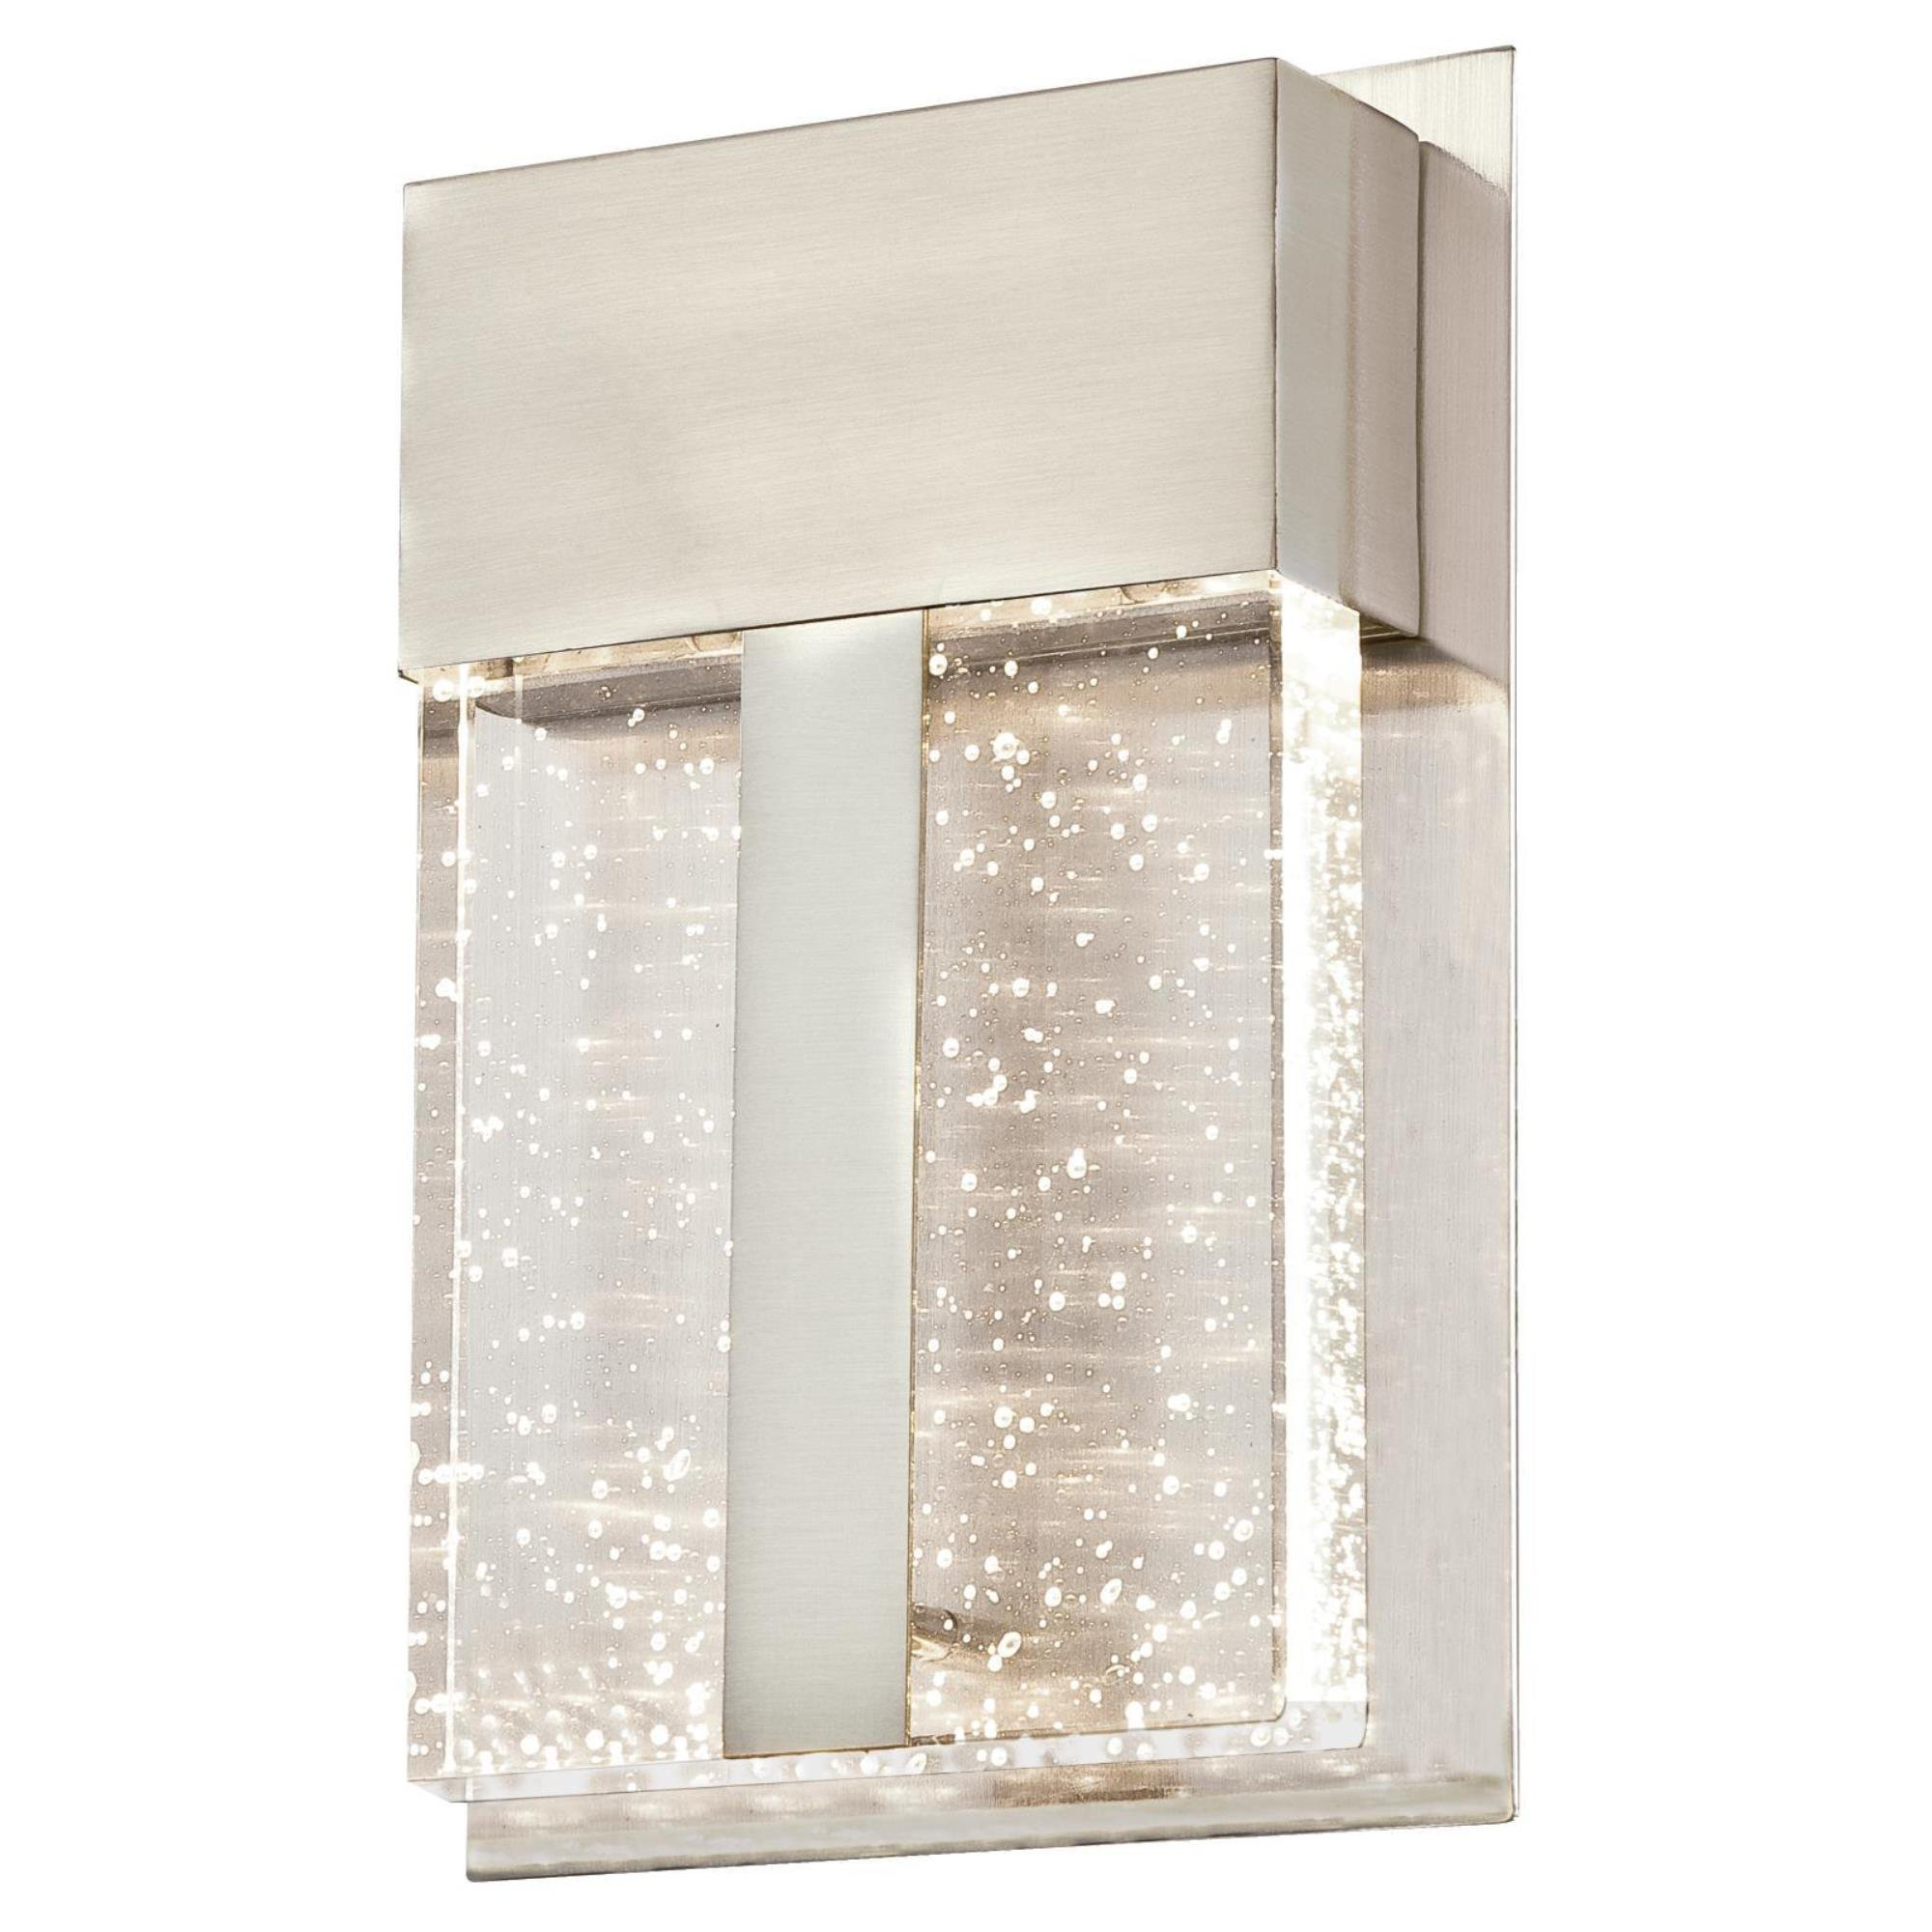 Westinghouse 6349000 Cava II One LED Outdoor Wall Fixture, Brushed Nickel Finish with Bubble Glass, 1 Light